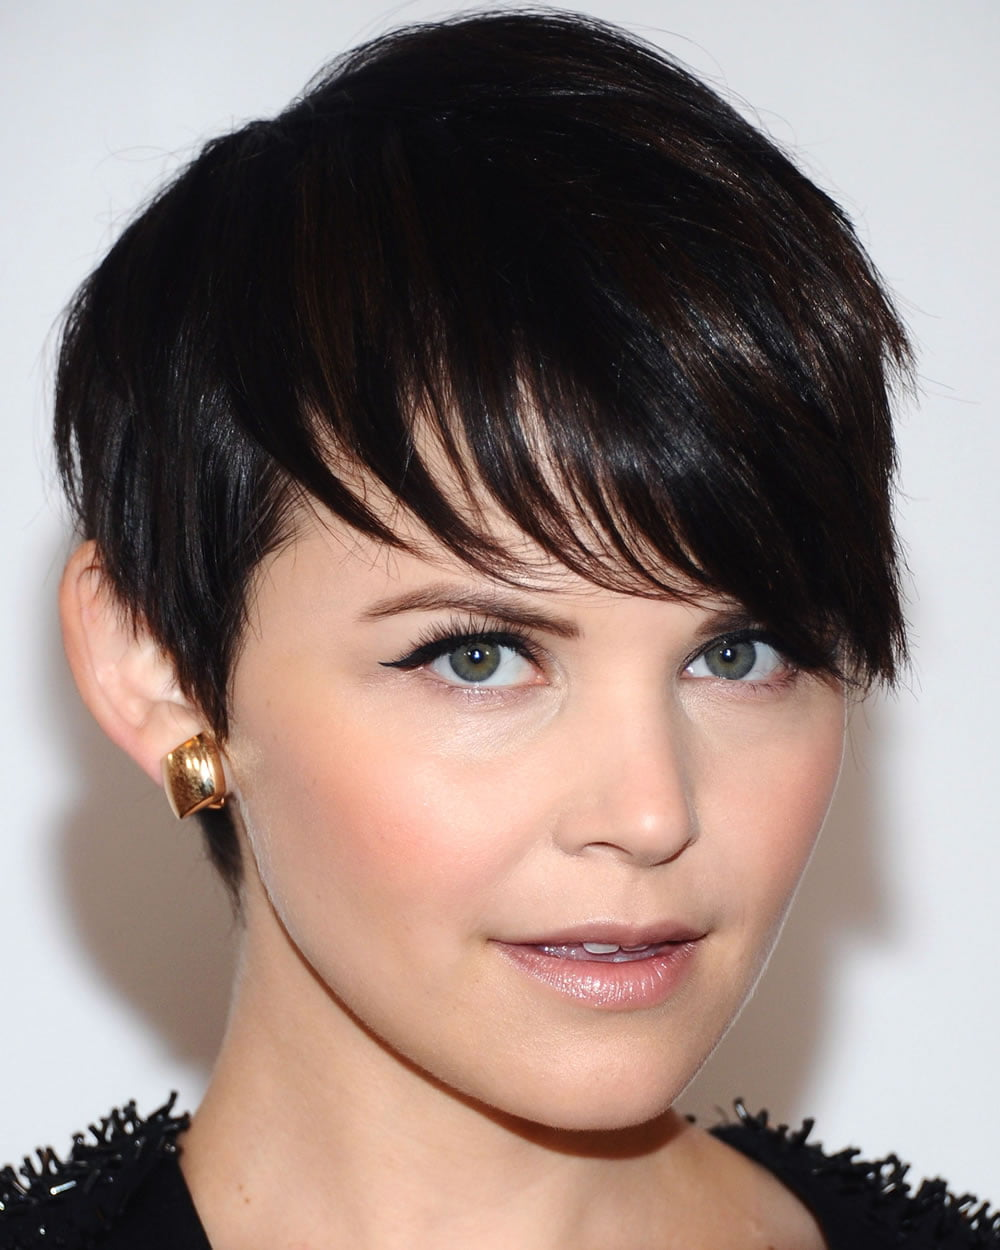 Black Hair Short Pixie Hairstyles for Diamond Faces